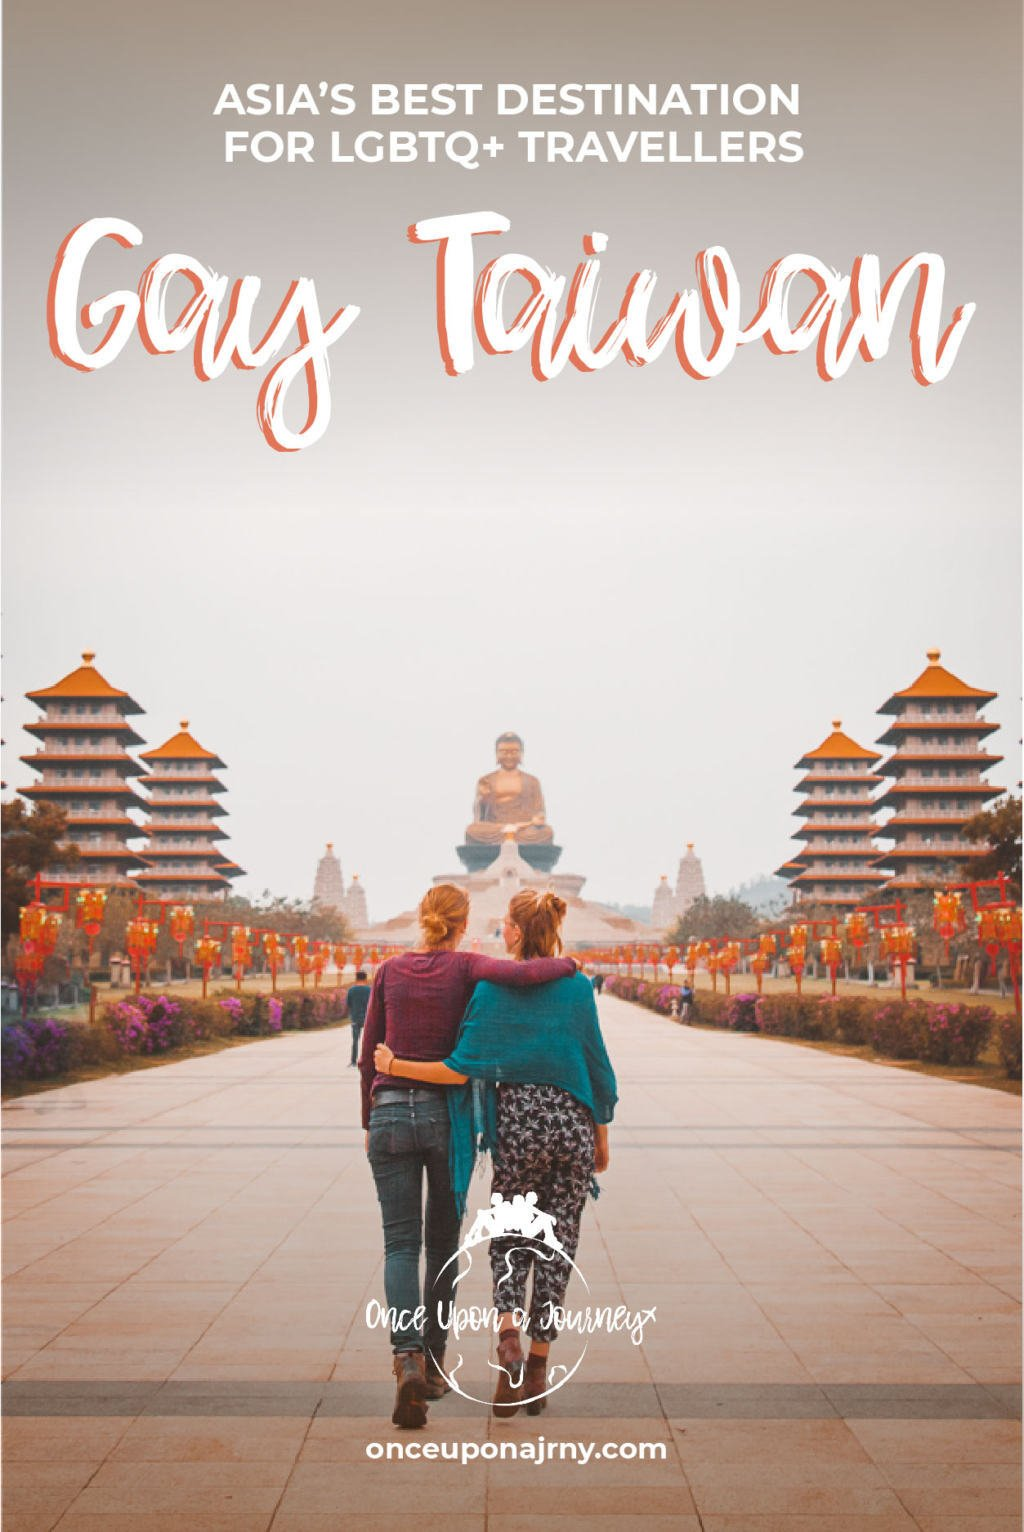 Gay Taiwan, Asia's best destination for LGBTQ+ travellers | Once Upon A Journey LGBT Travel Blog